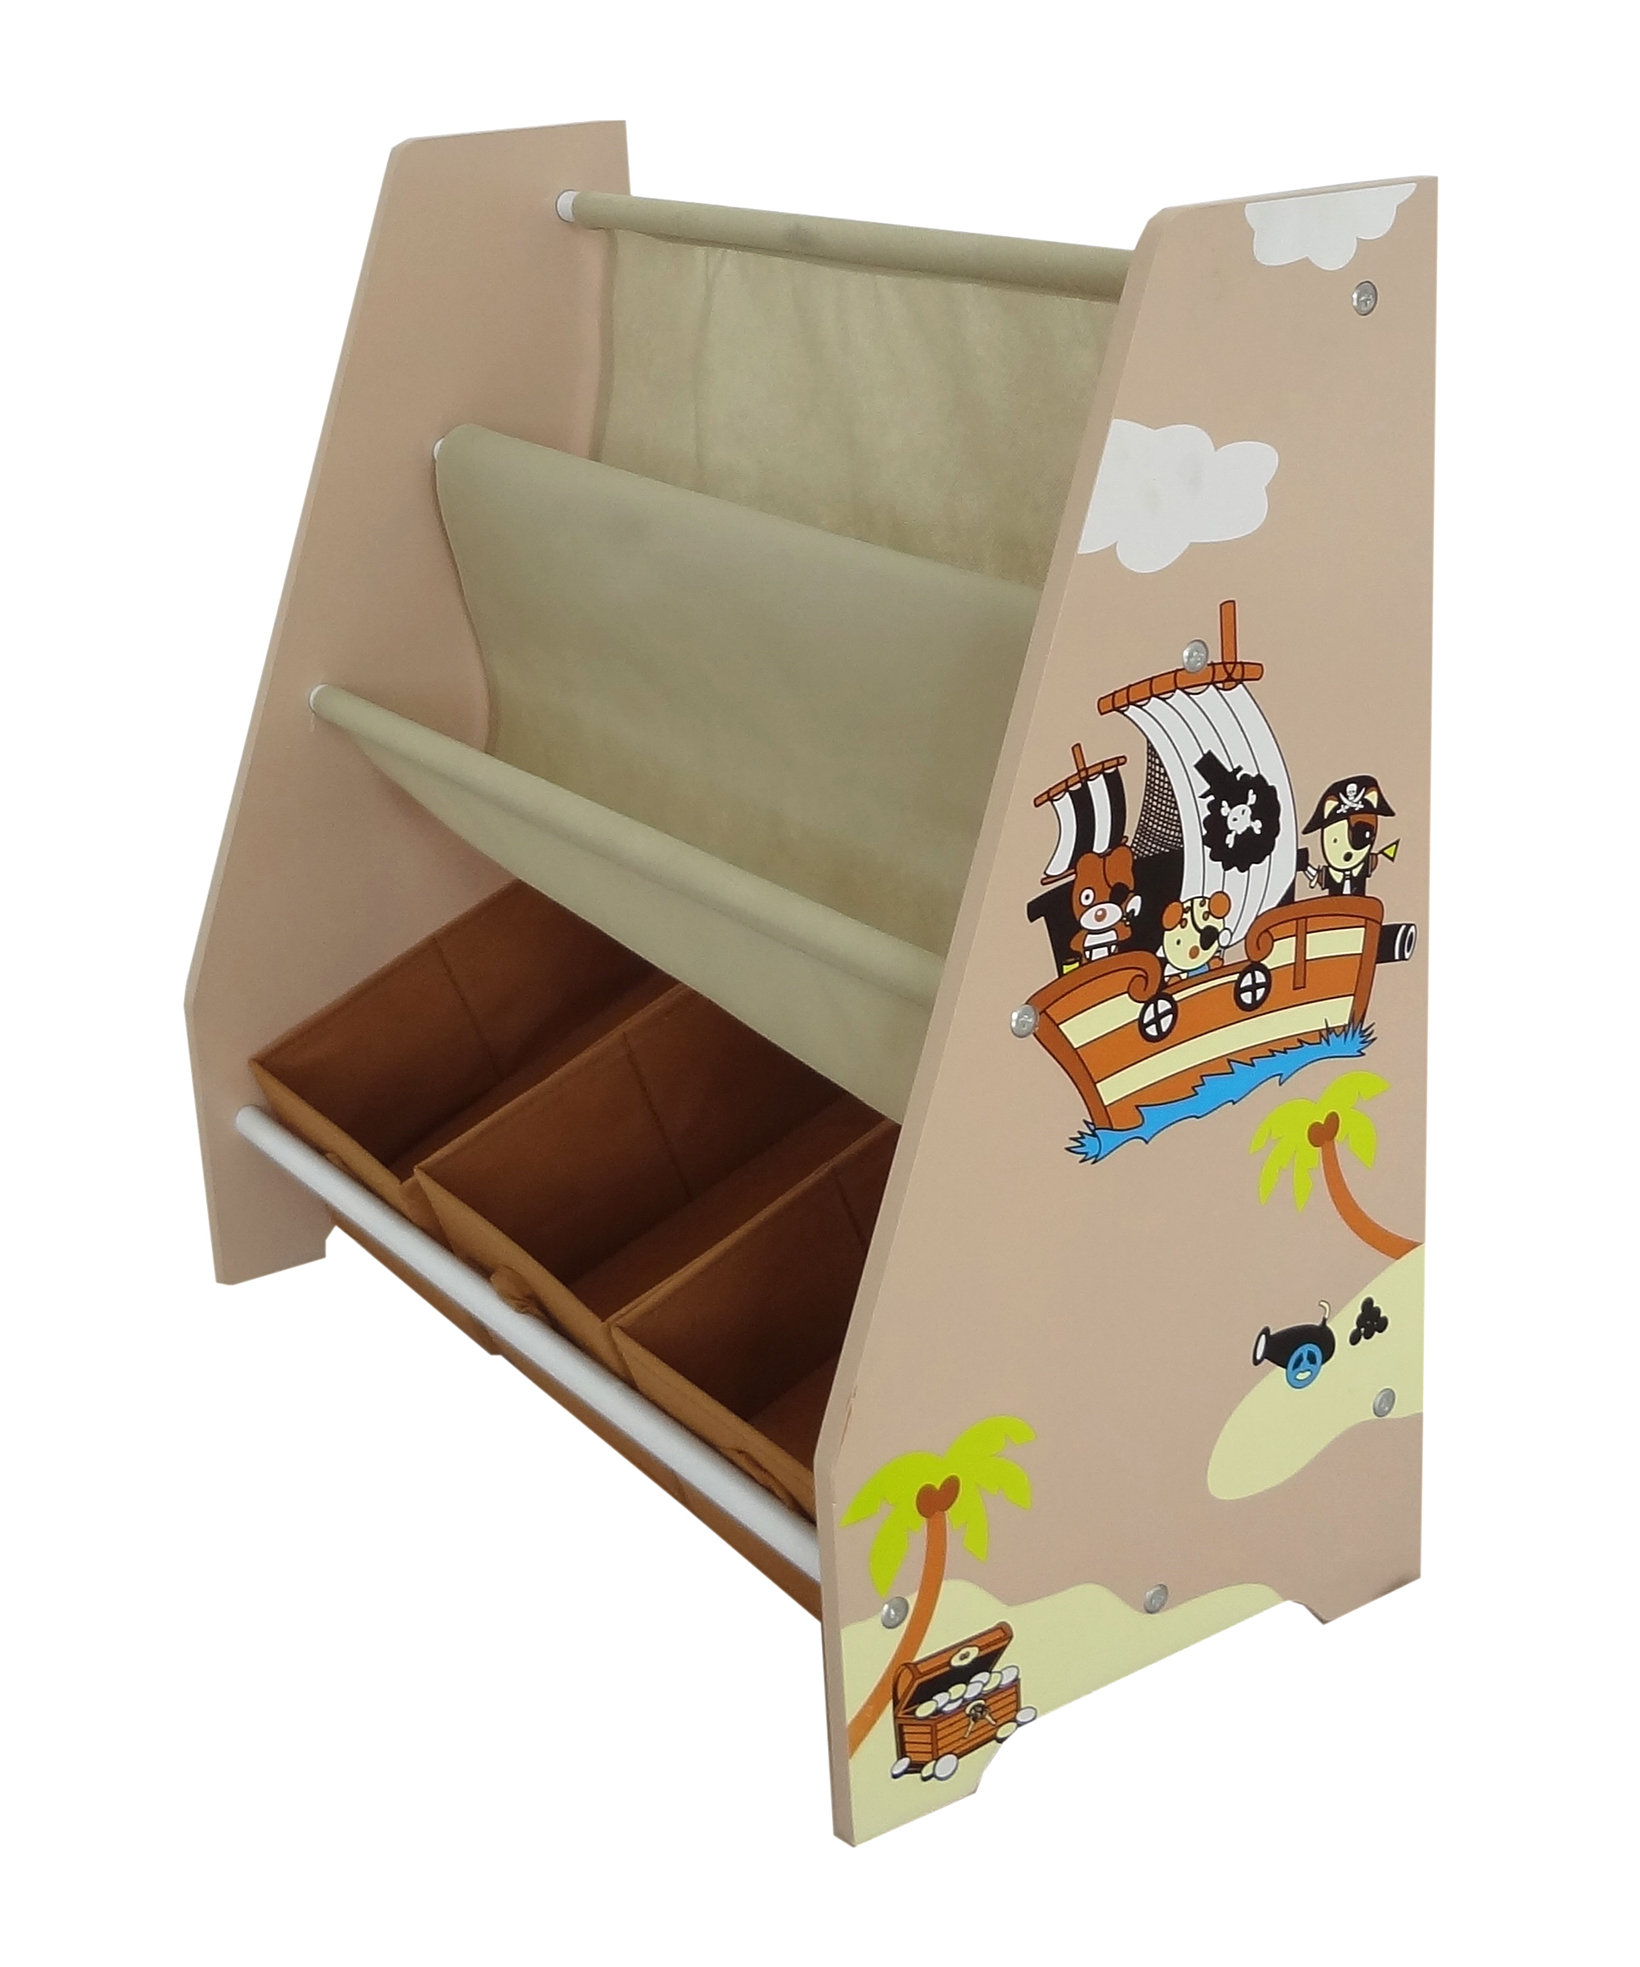 Kiddi Style Pirate Themed Sling Bookshelf And Storage Kiddy Products